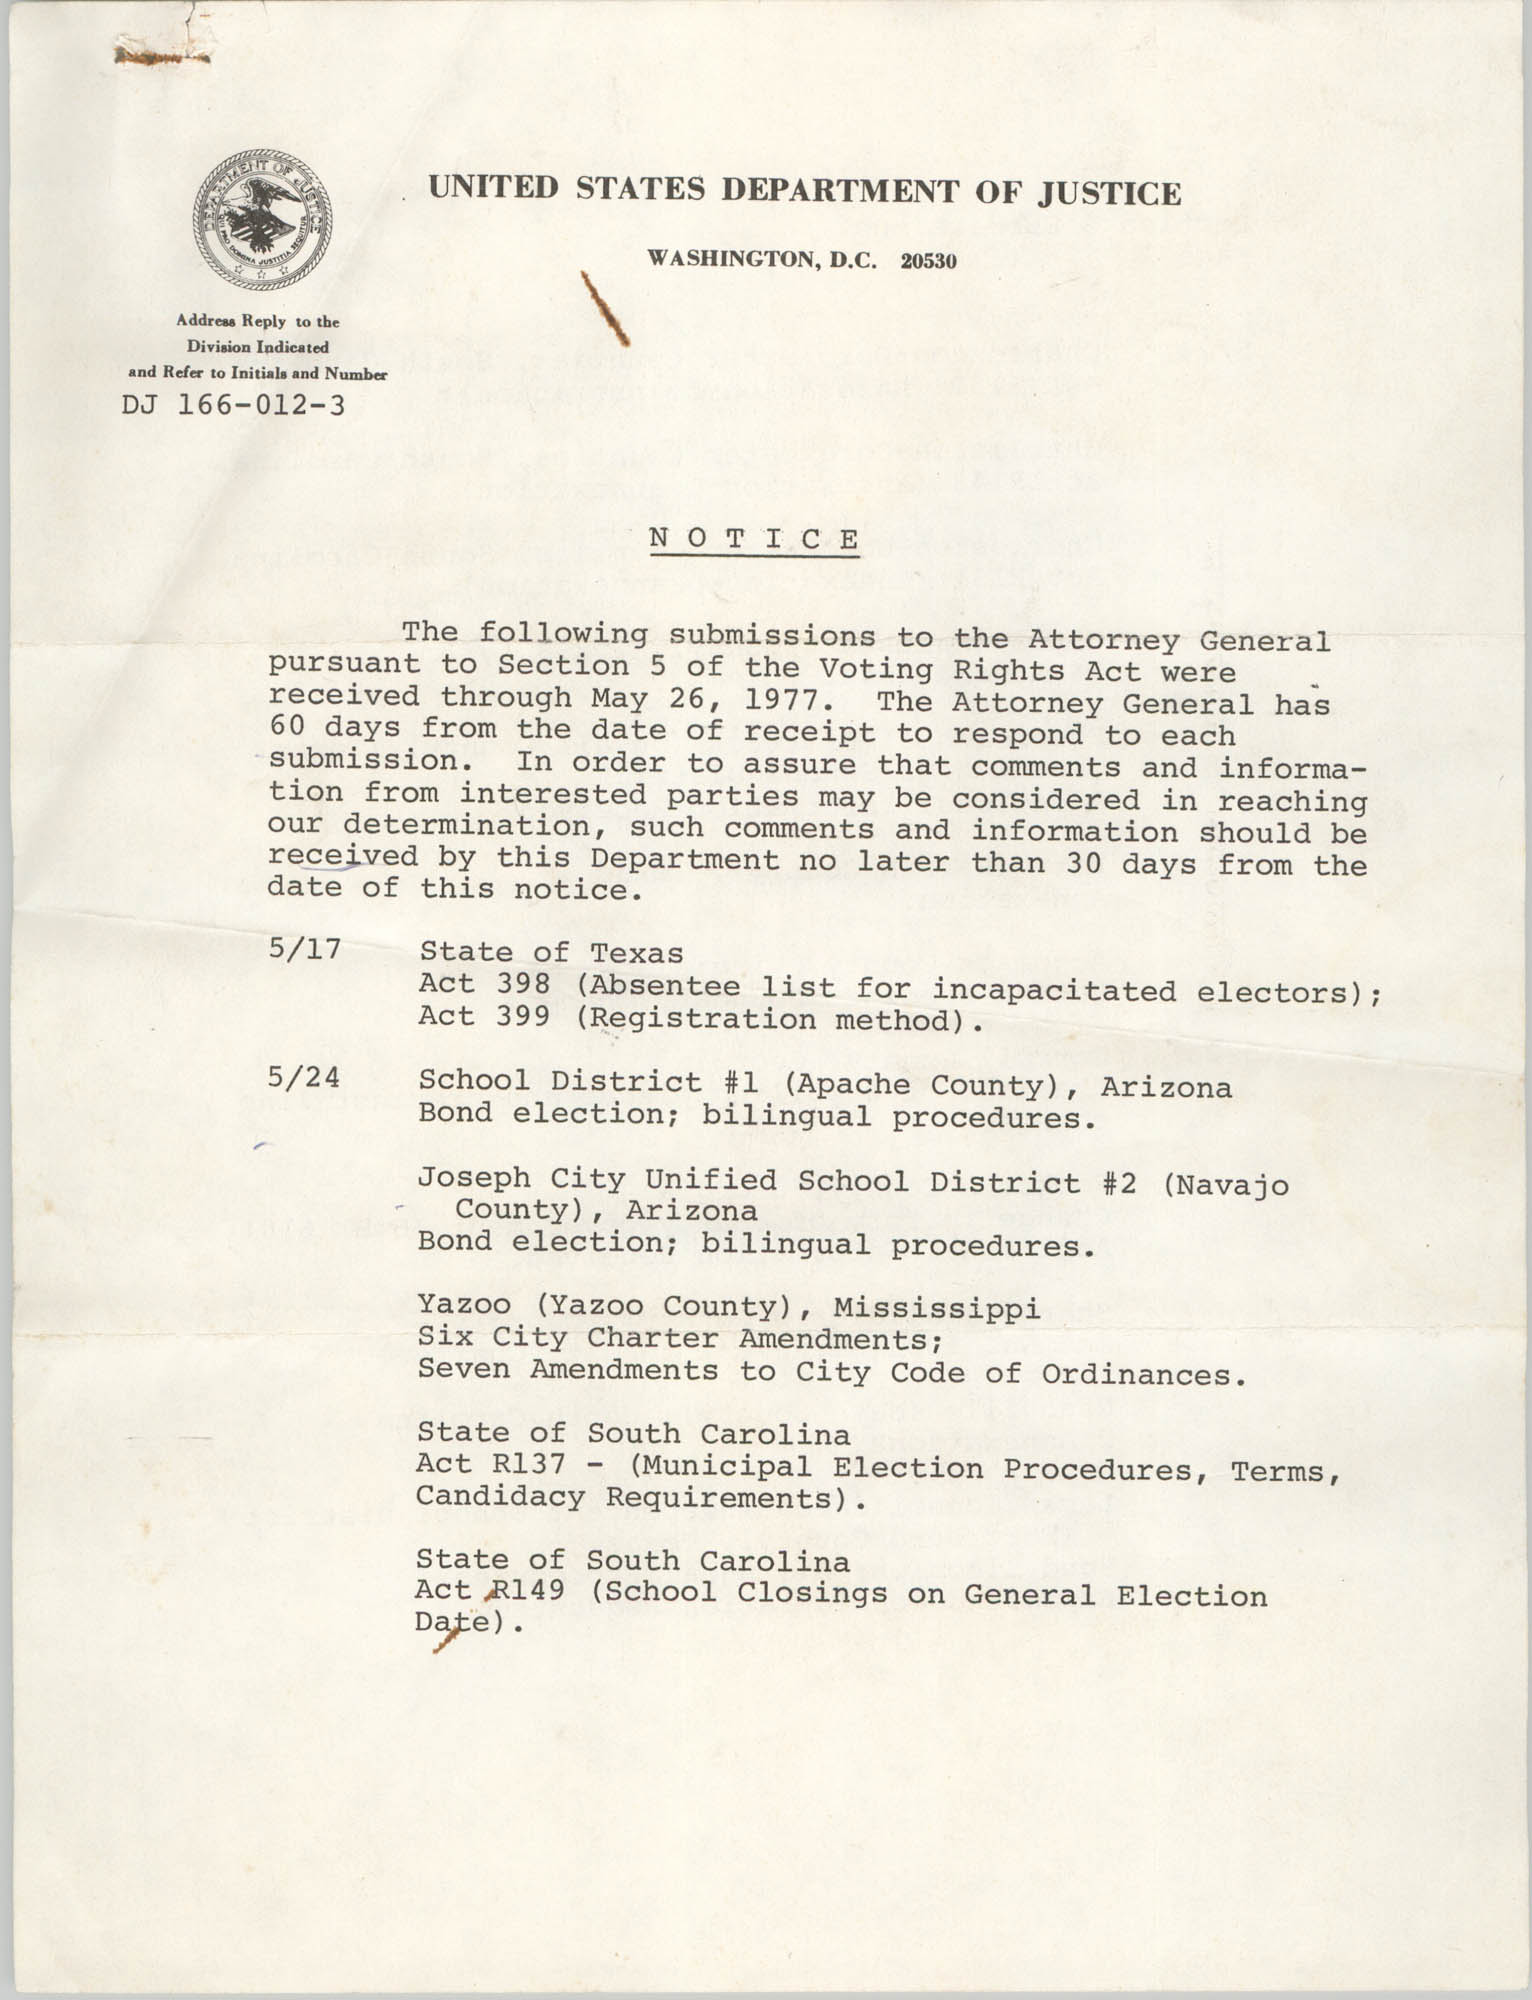 United States Department of Justice Notice, May 26, 1977